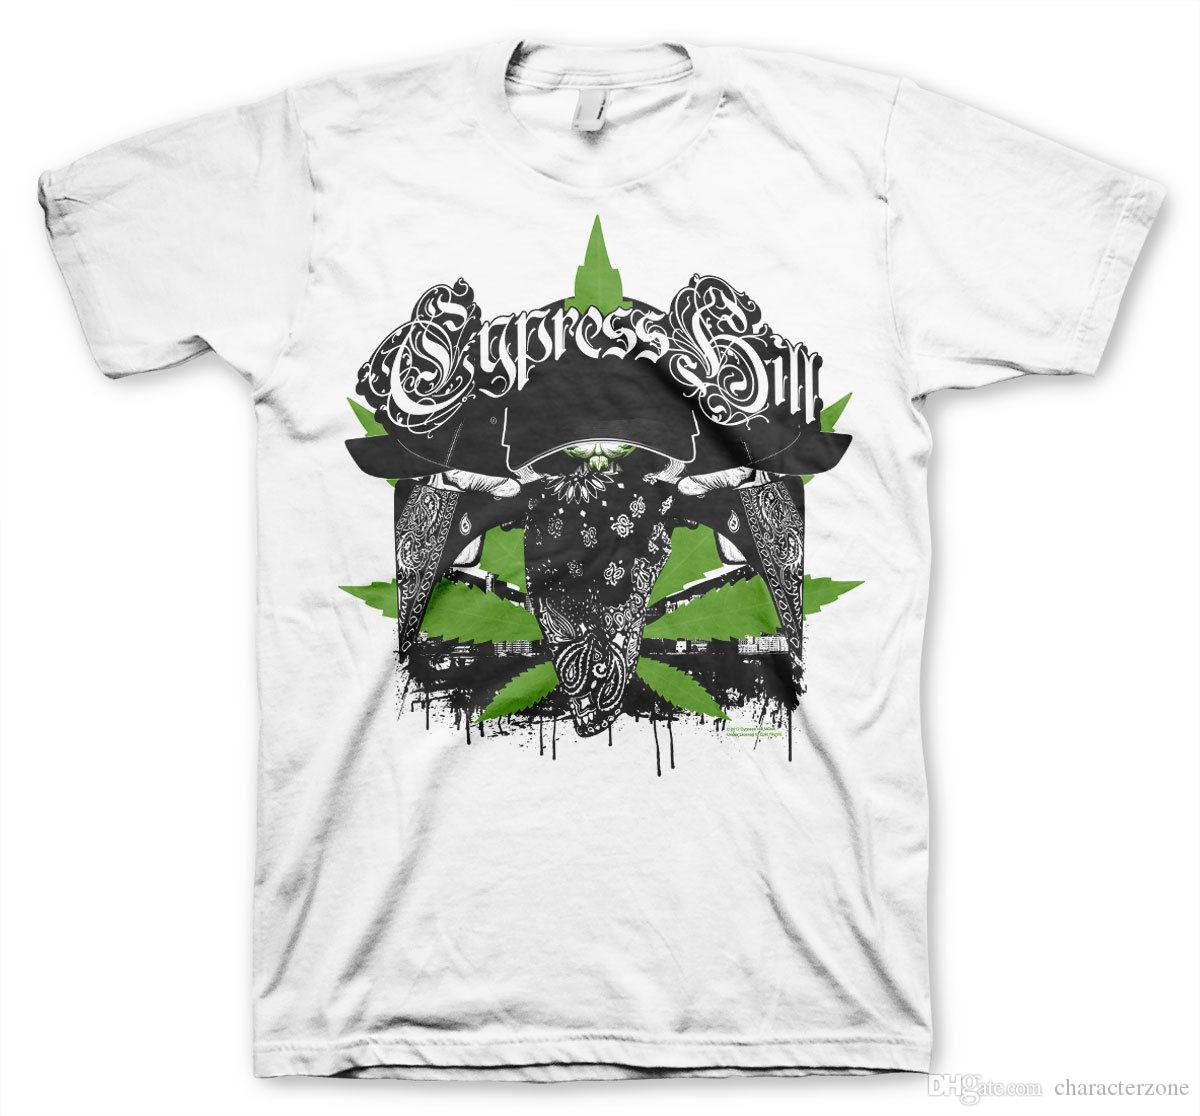 526be91f92b0e Officially Licensed Cypress Hill Hoodlum Men S T Shirt S XXL Sizes Shop  Online T Shirts T Shirt From Characterzone